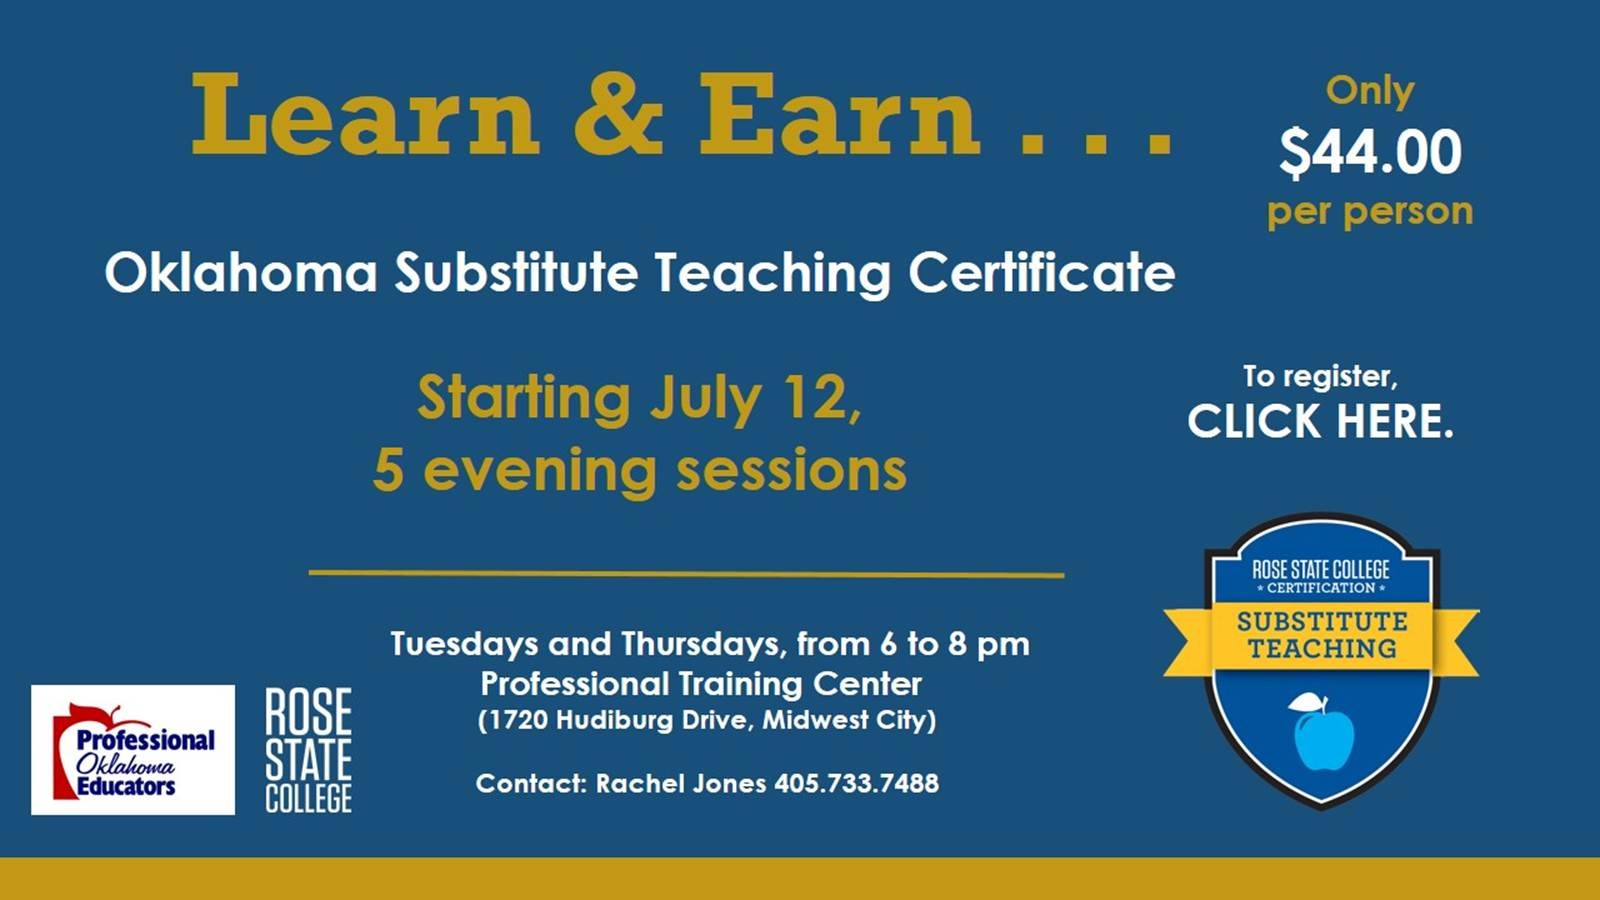 Learn Earn Oklahoma Substitute Teaching Certificate